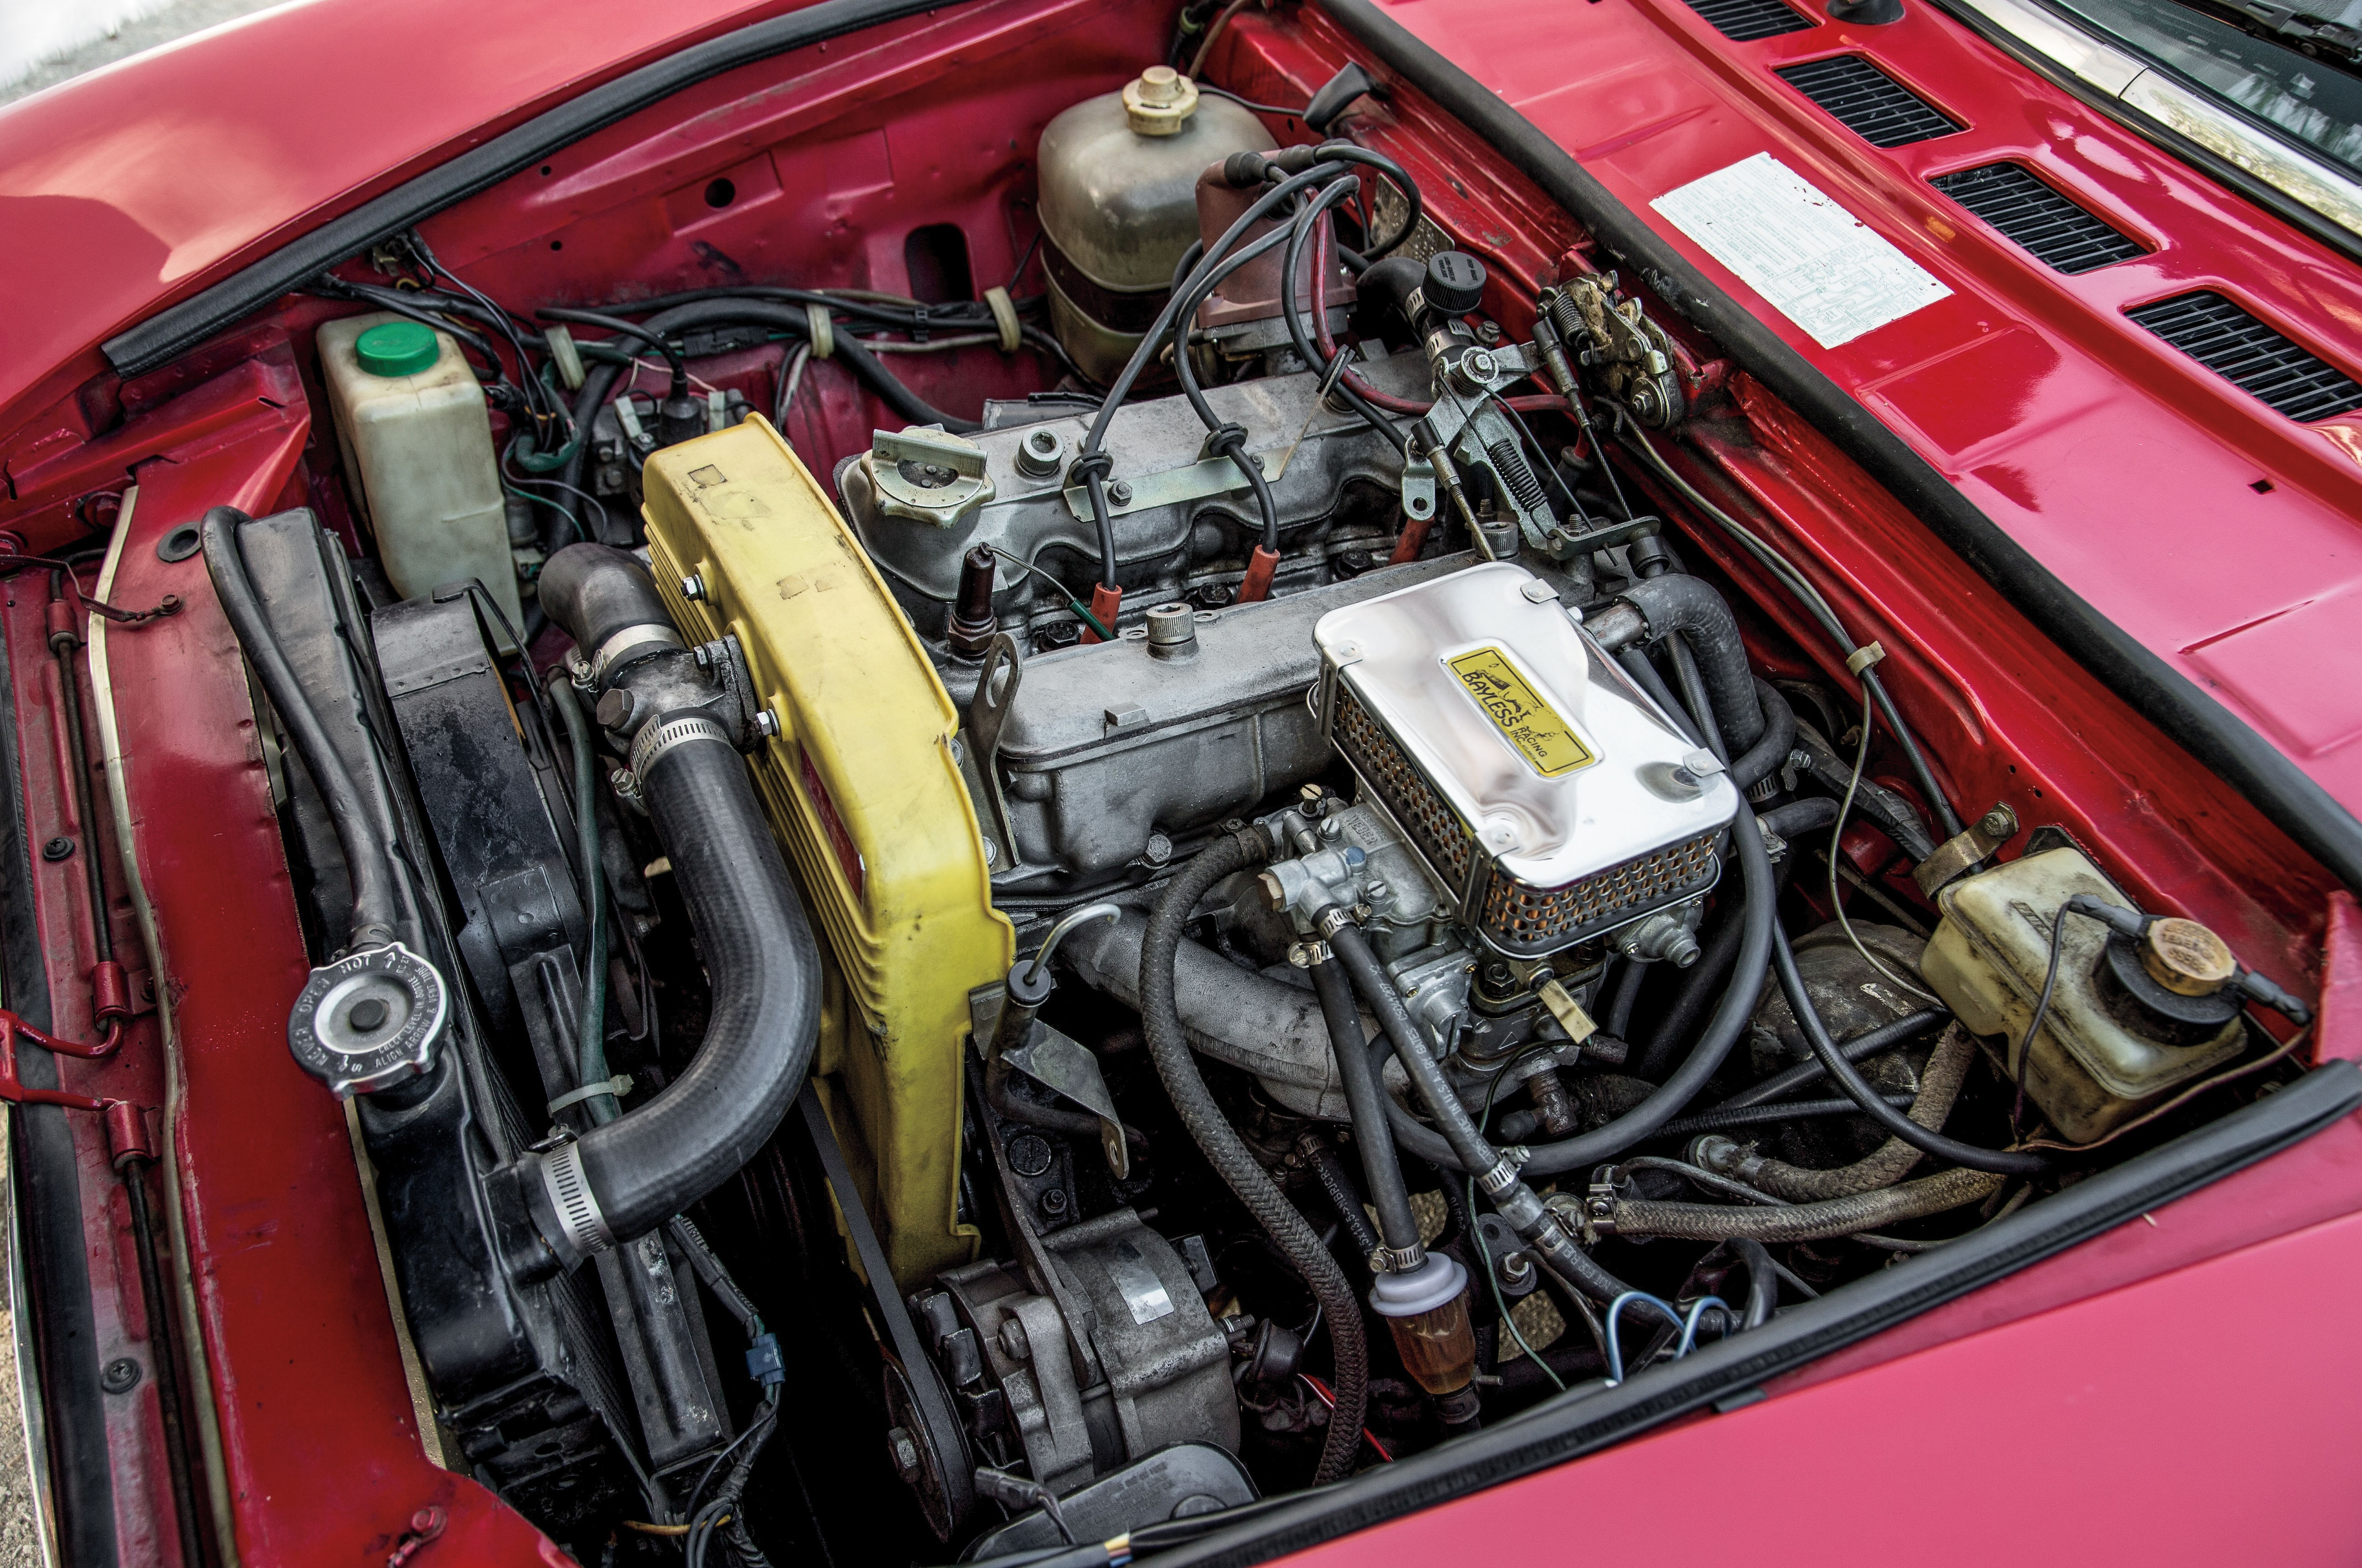 The classic Lampredi twin-cam is a well- designed, great-sounding engine that's easy to work on and to coax more power out of.